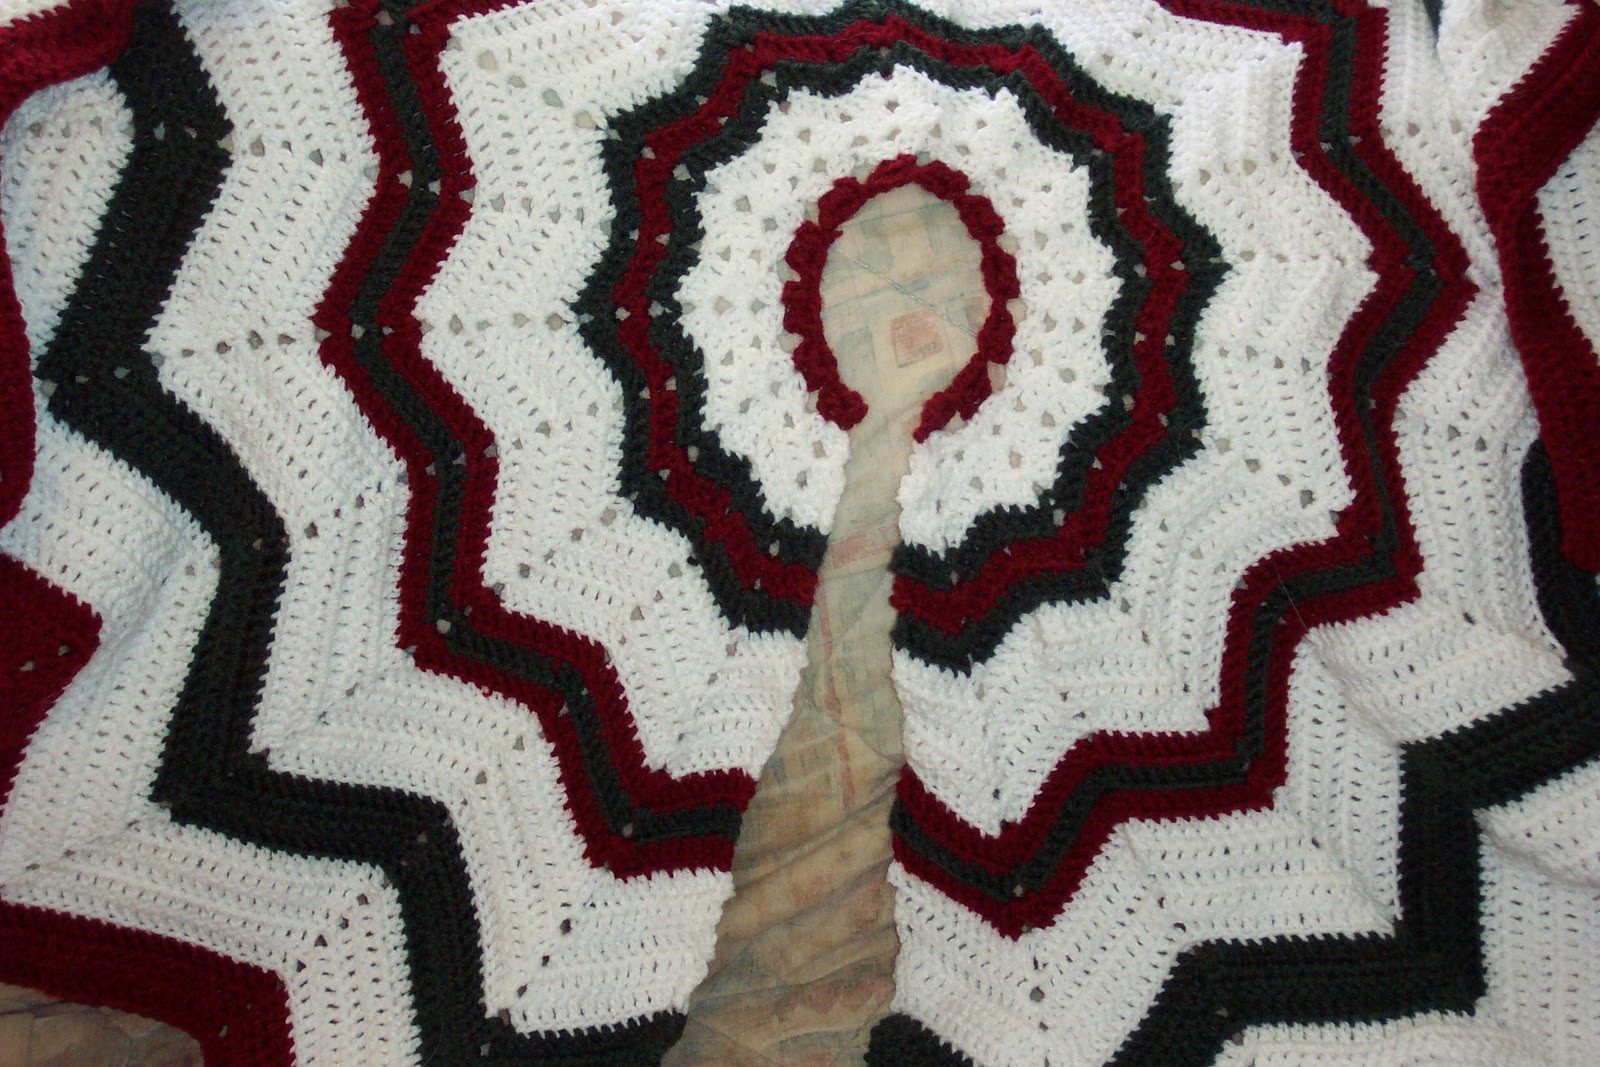 Free Crochet Tree Skirt Pattern New Smoothfox Crochet and Knit Don T for the Christmas Of Marvelous 49 Models Free Crochet Tree Skirt Pattern